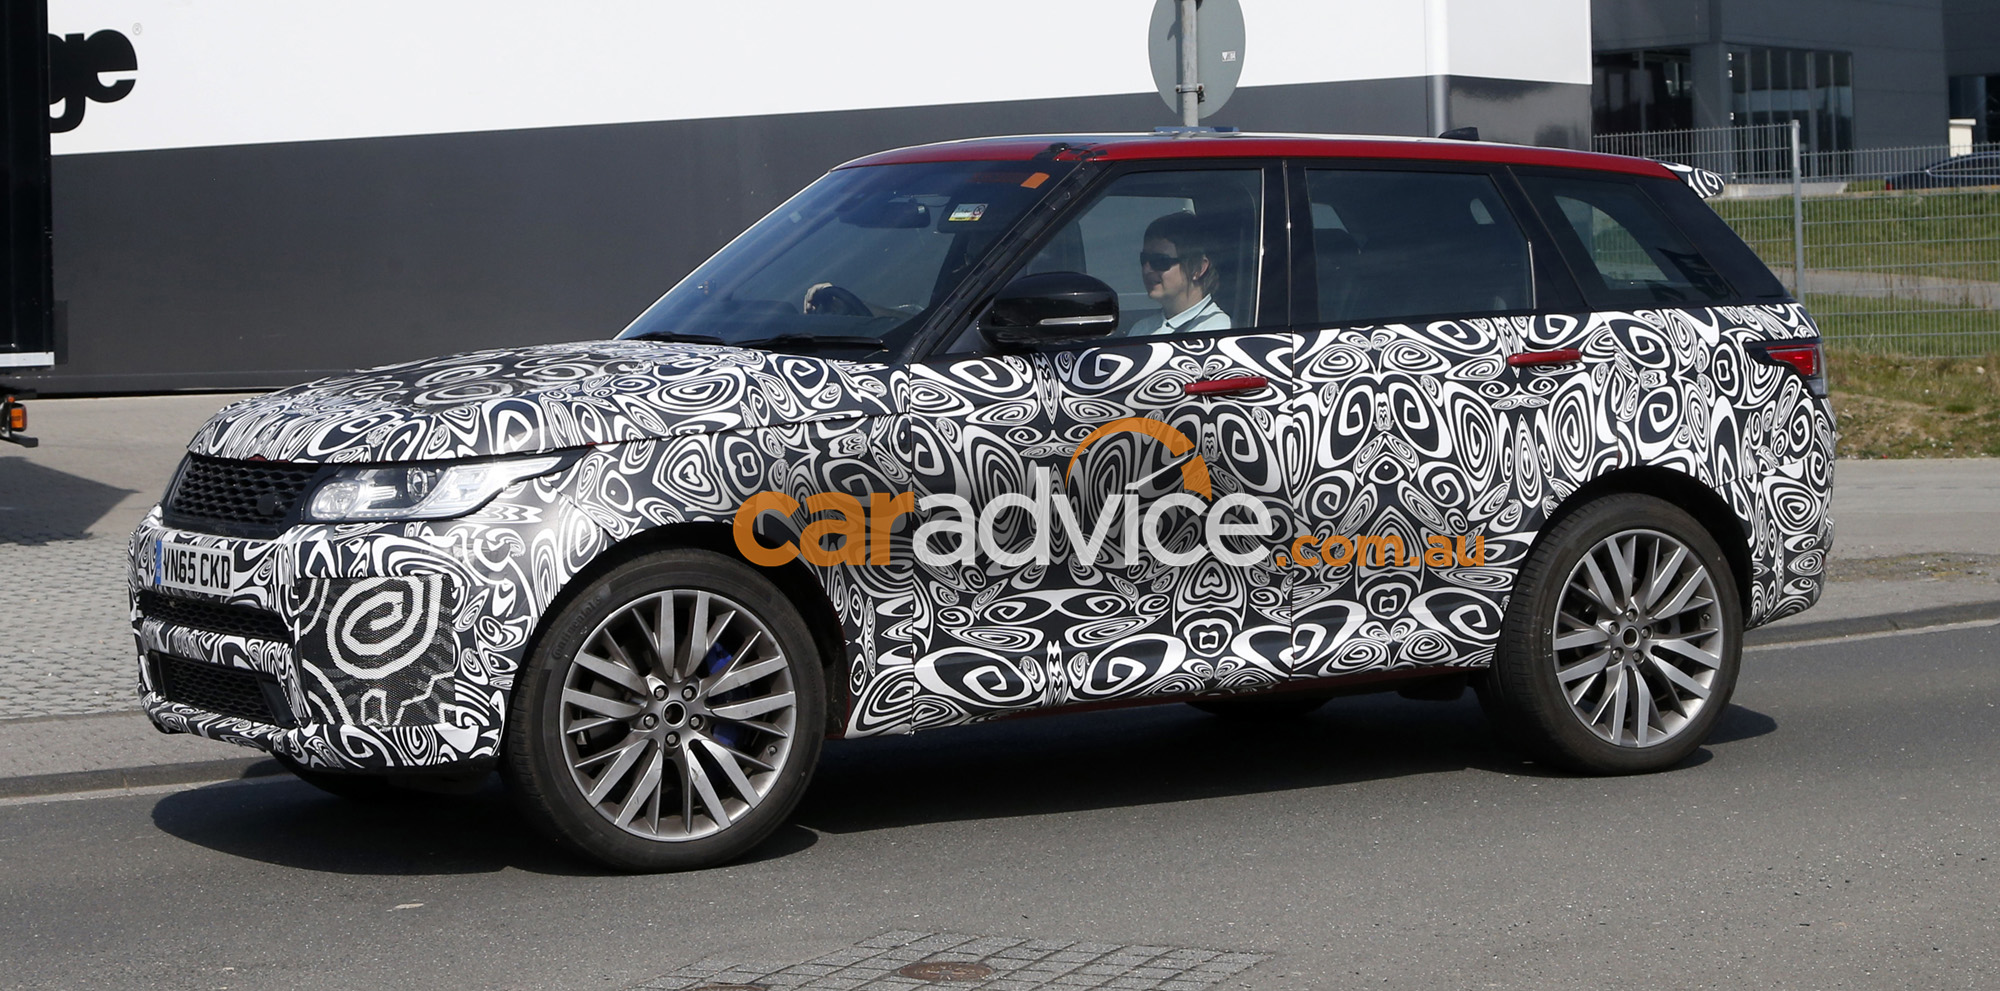 2017 range rover sport svr spied testing performance upgrades expected photos 1 of 7. Black Bedroom Furniture Sets. Home Design Ideas